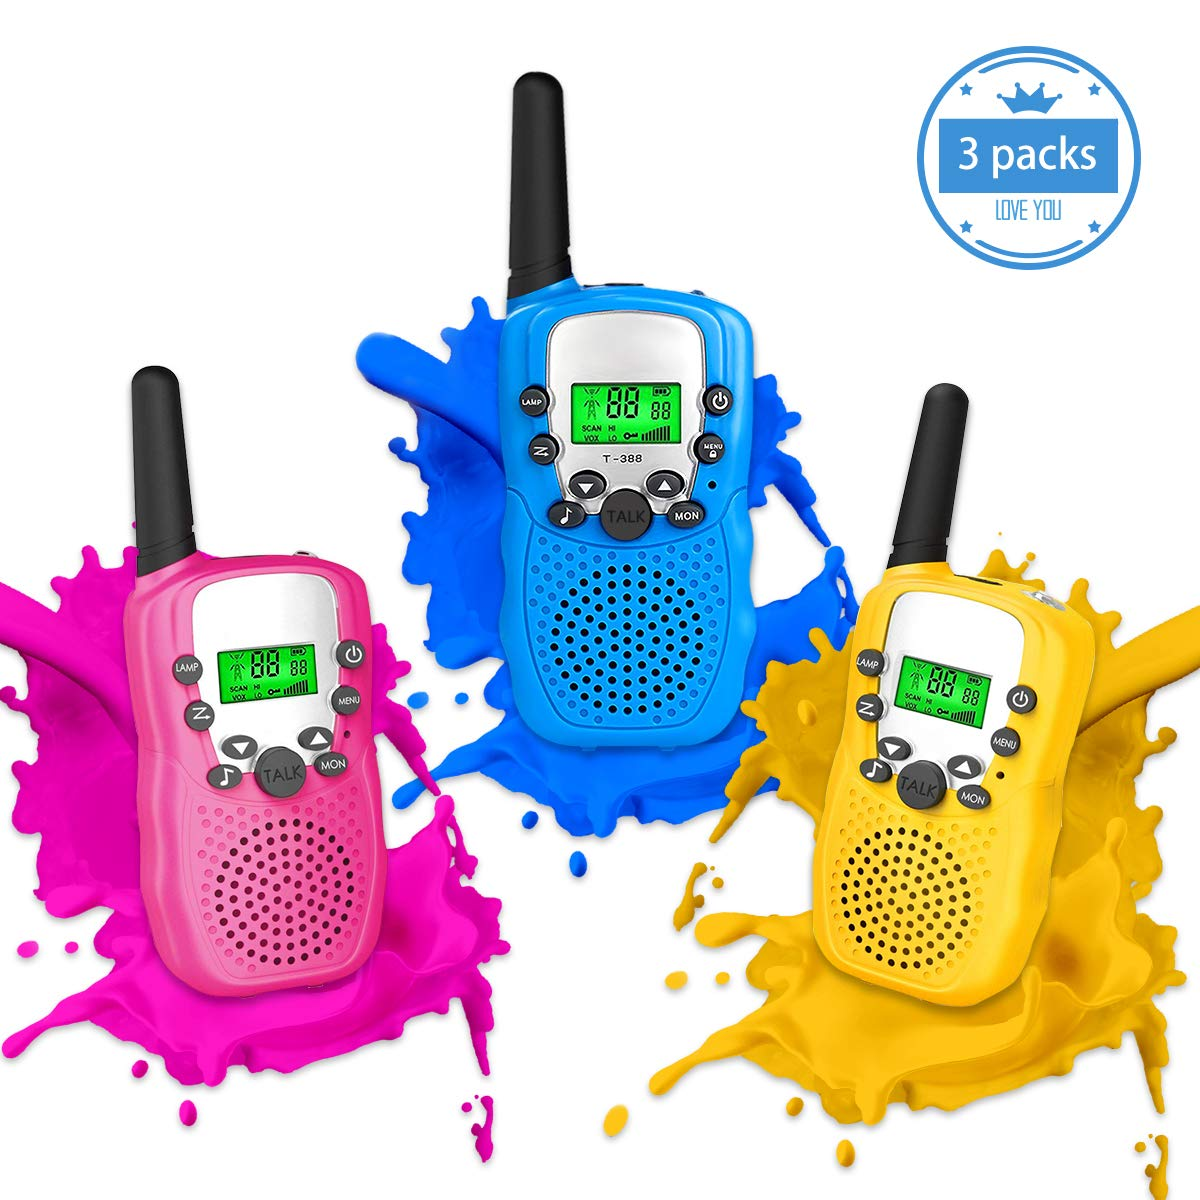 Outdoor Toys for 5-10 Year Old Boys Girls Pussan Kids Walkie Talkies 3 Pack Long Range 2 Miles 22 Channels Kids Camping Outside Summer Games Walky Talky for Children Gifts by Pussan (Image #1)